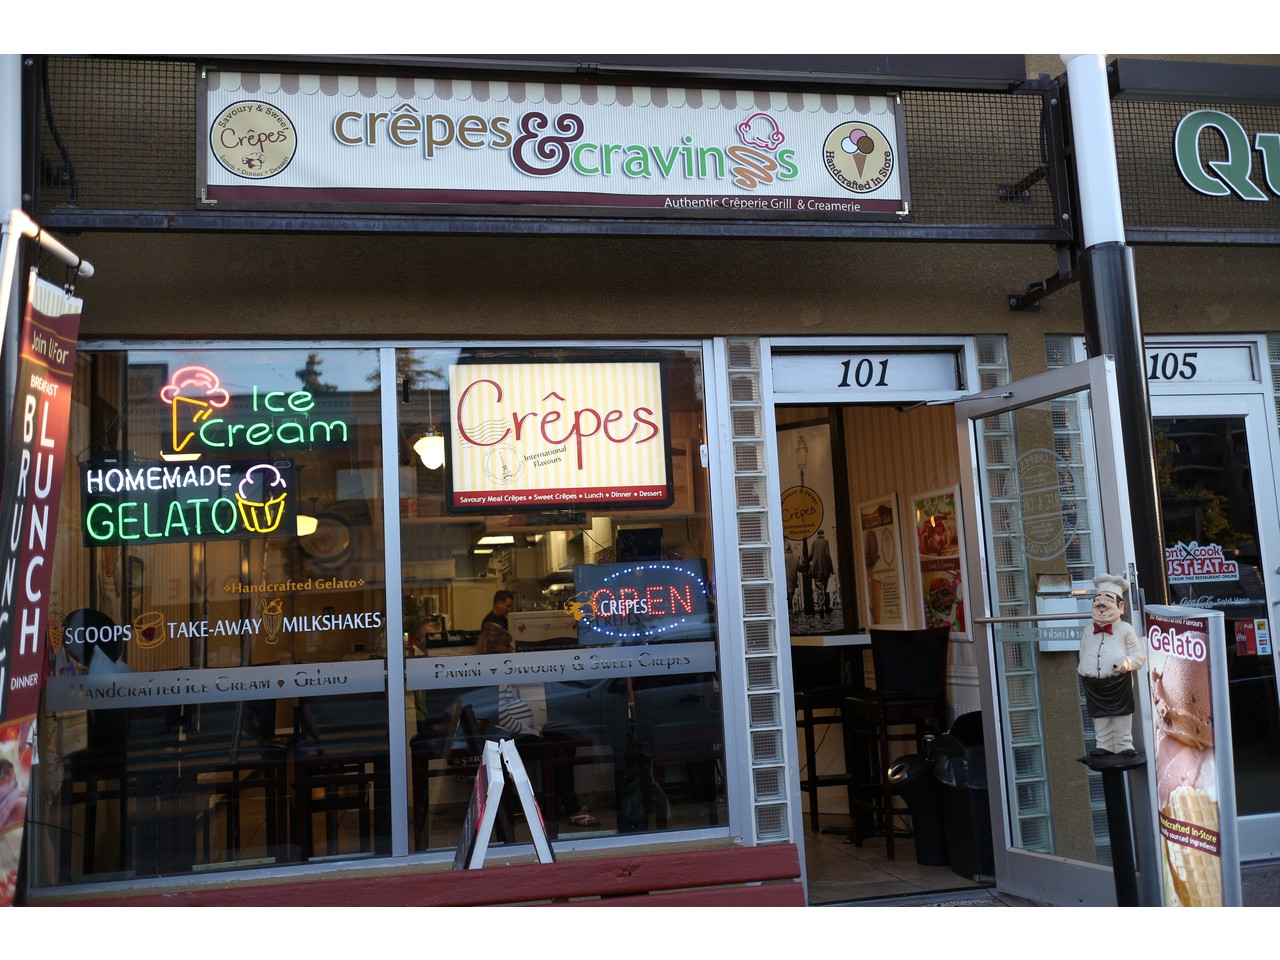 A shot of Crepes and Cravings within the pool of shops and stores on 17th avenue,